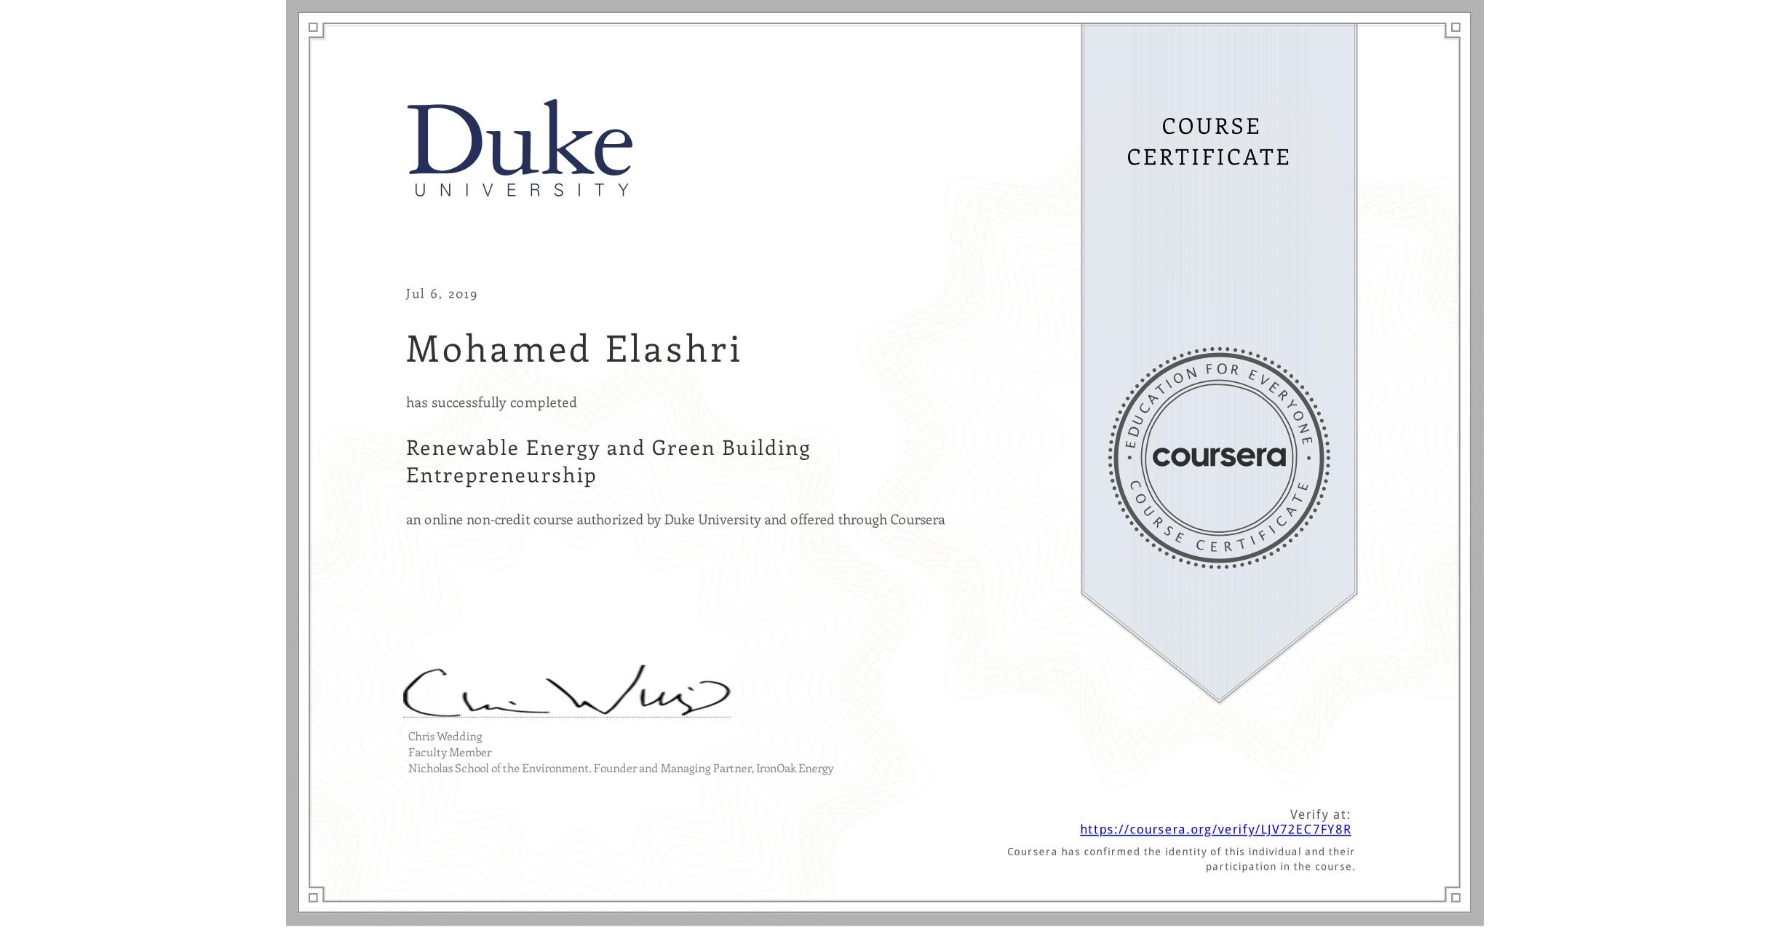 View certificate for Mohamed Elashri, Renewable Energy and Green Building Entrepreneurship, an online non-credit course authorized by Duke University and offered through Coursera